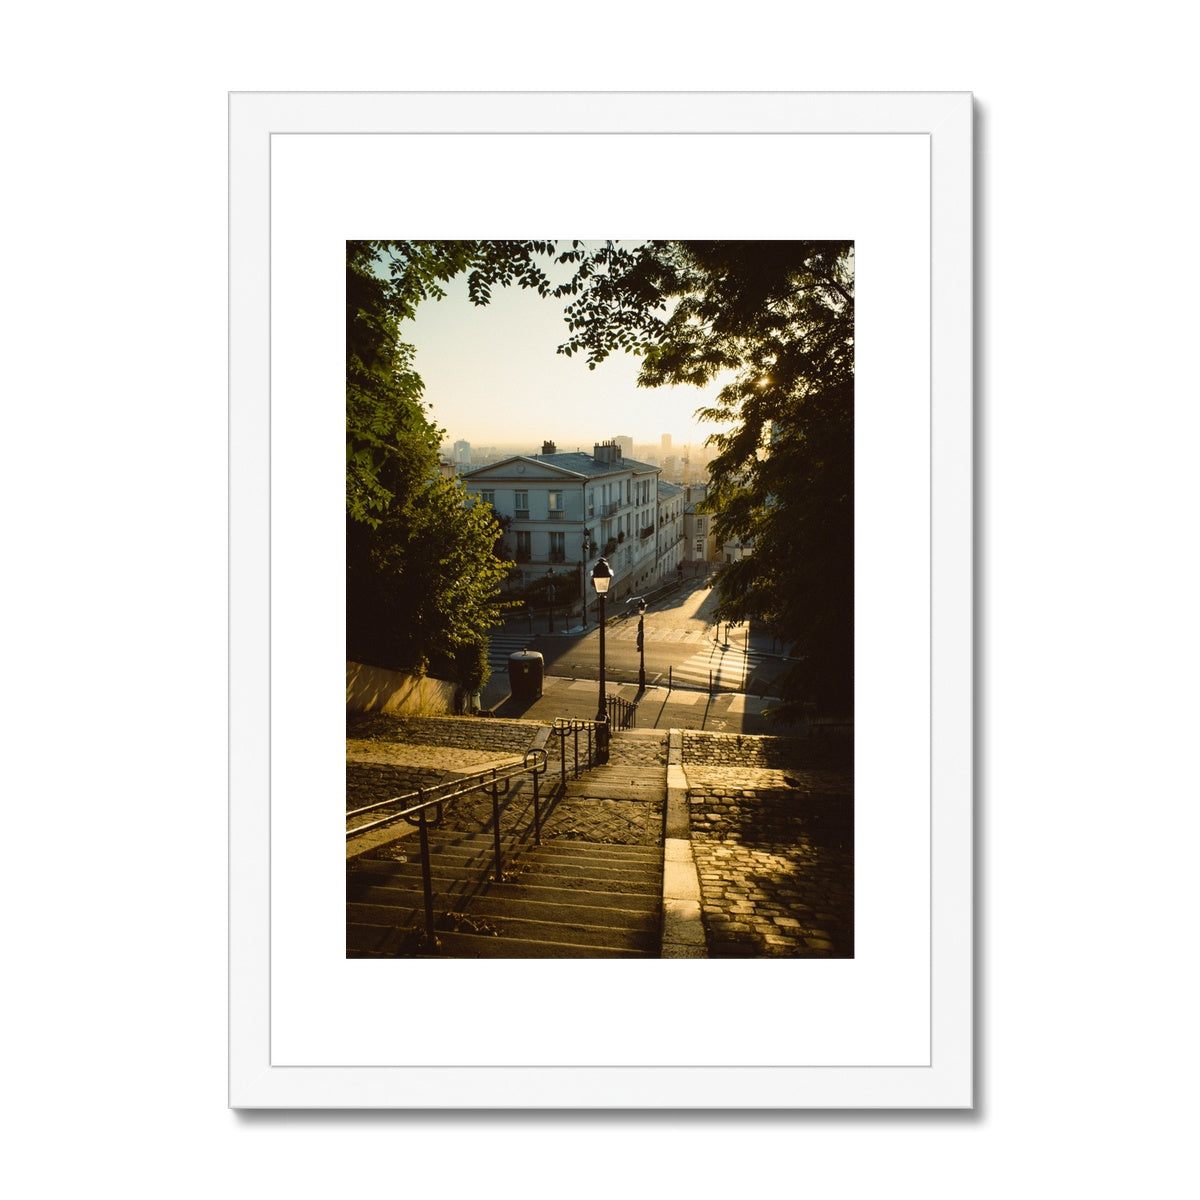 Montmartre, at sunrise is never too much - Framed & Mounted Print